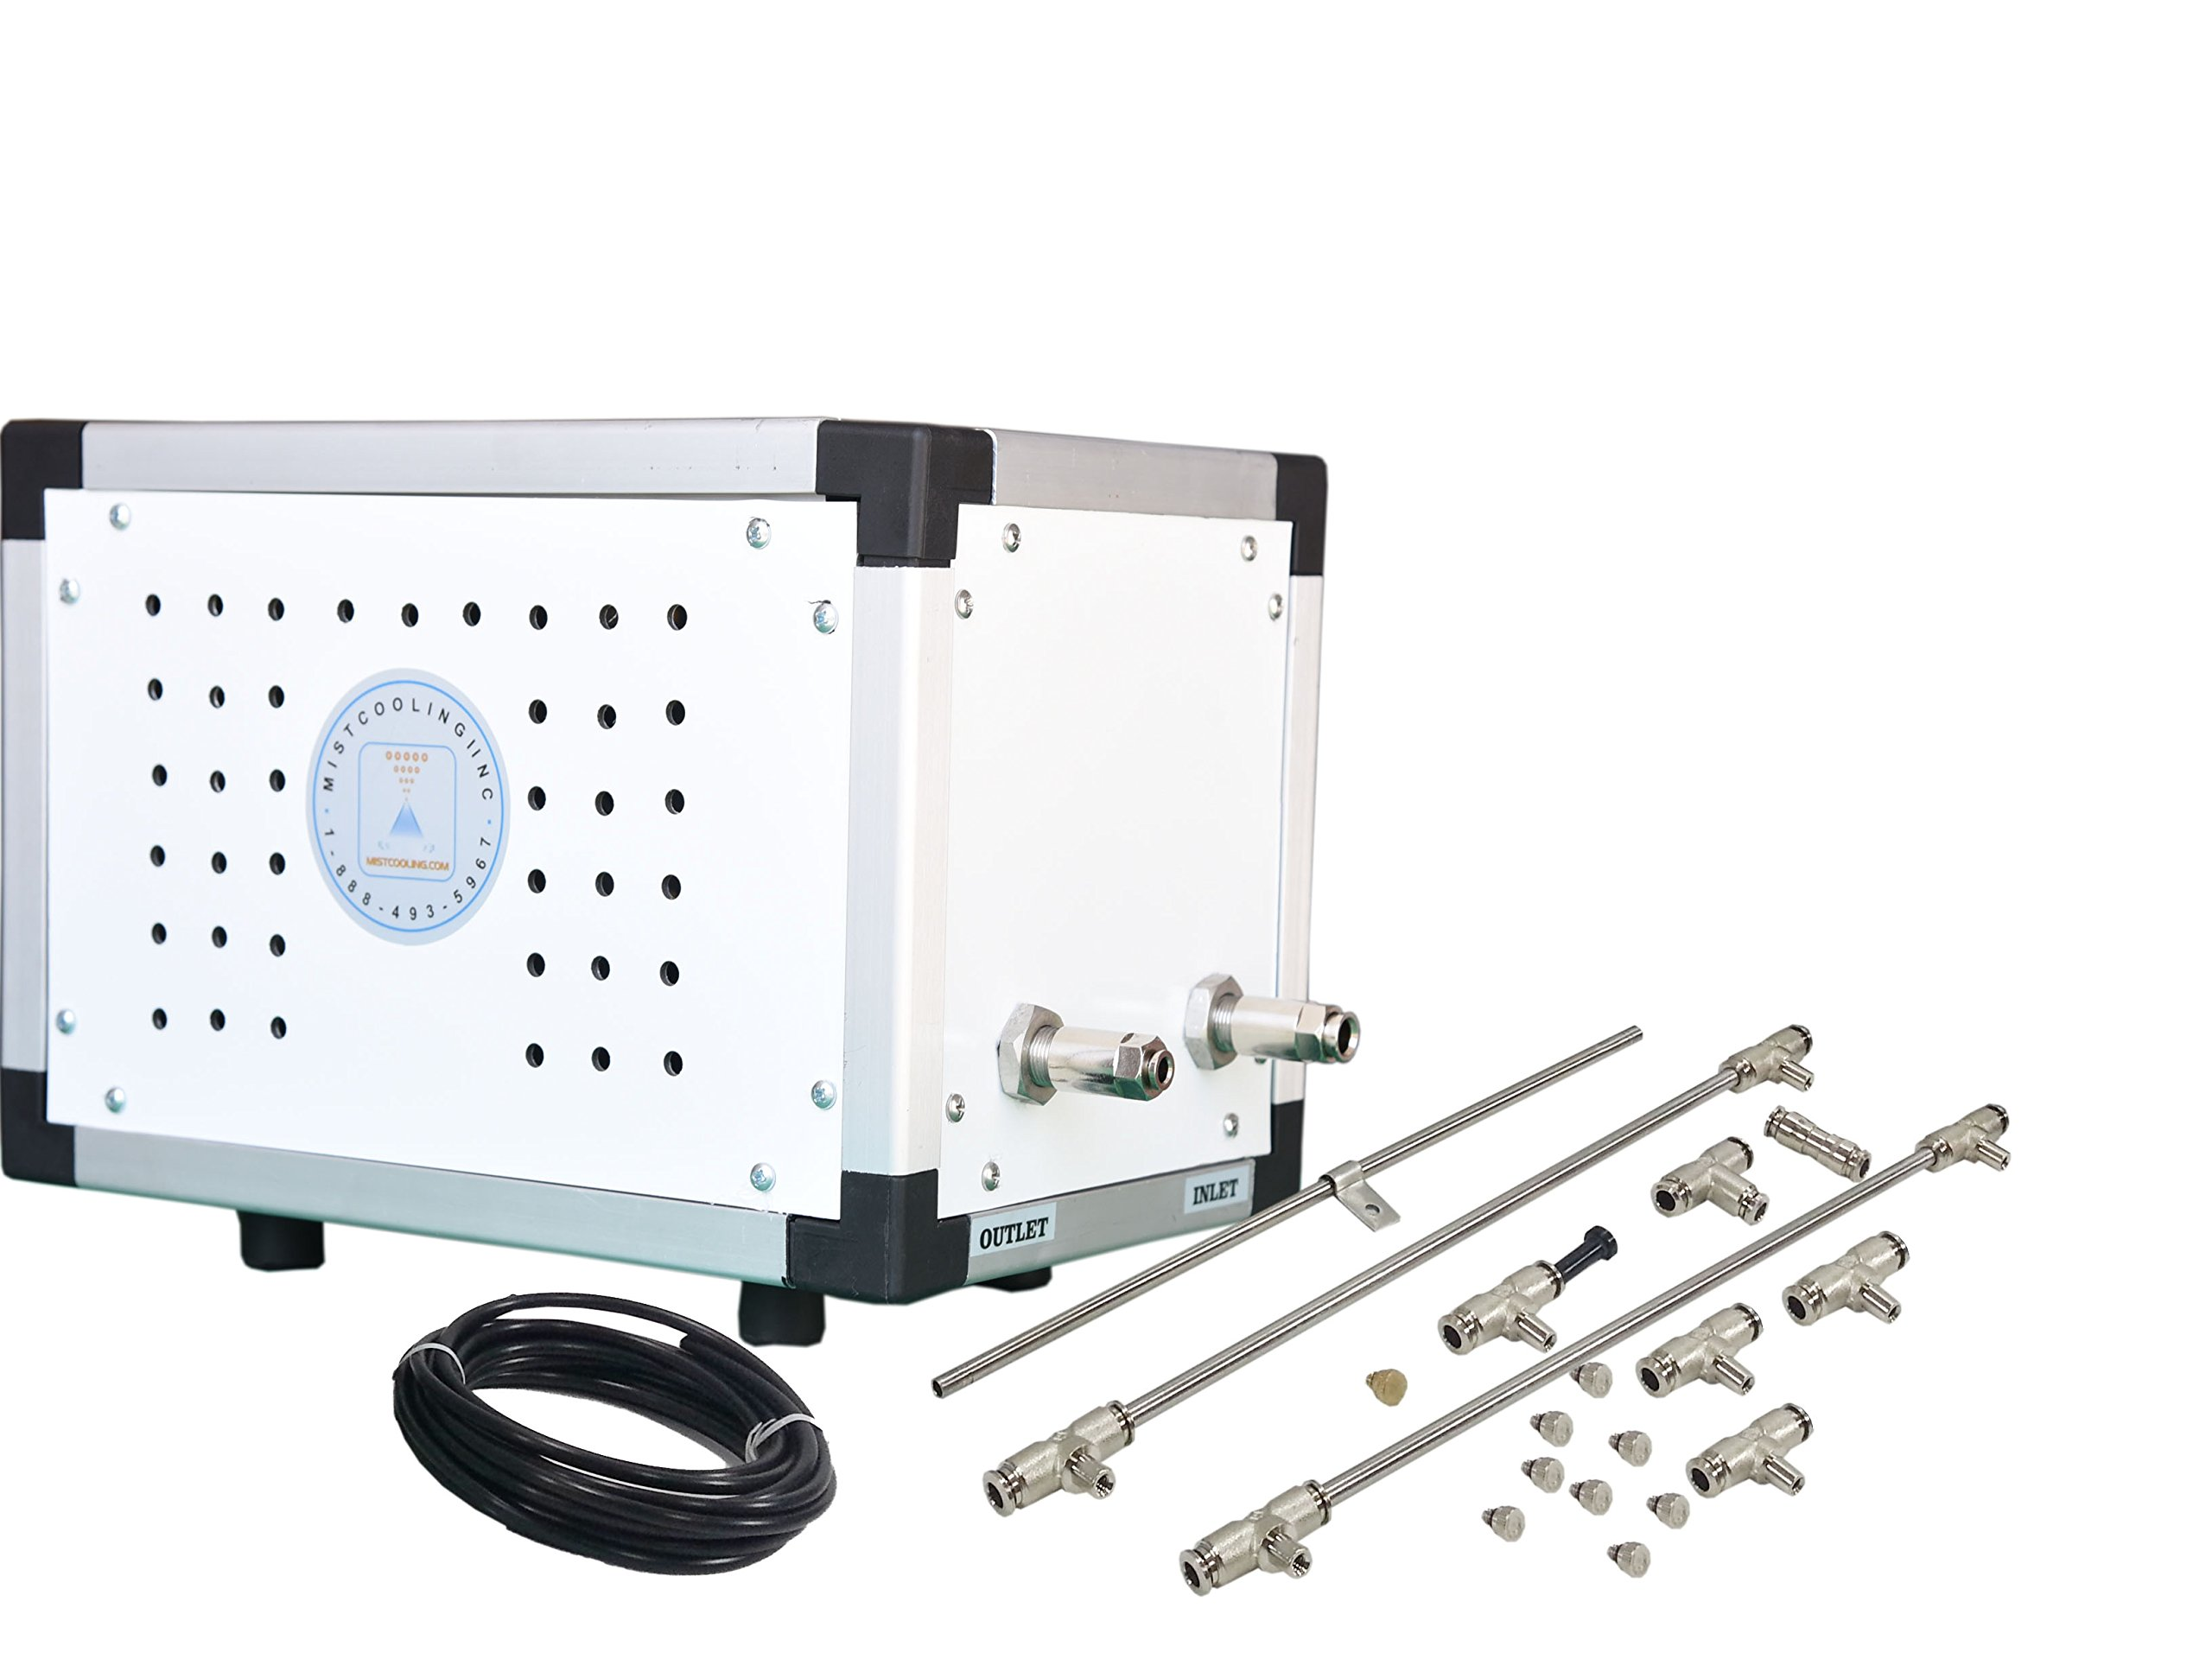 Industrial Misting System - Patio Misting System - 250 PSI Misting Pump, Stainless Steel Tubing - For Residential. Commercial, Outdoor Restaurant and Industrial Misting Application (20 Nozzle System) by mistcooling